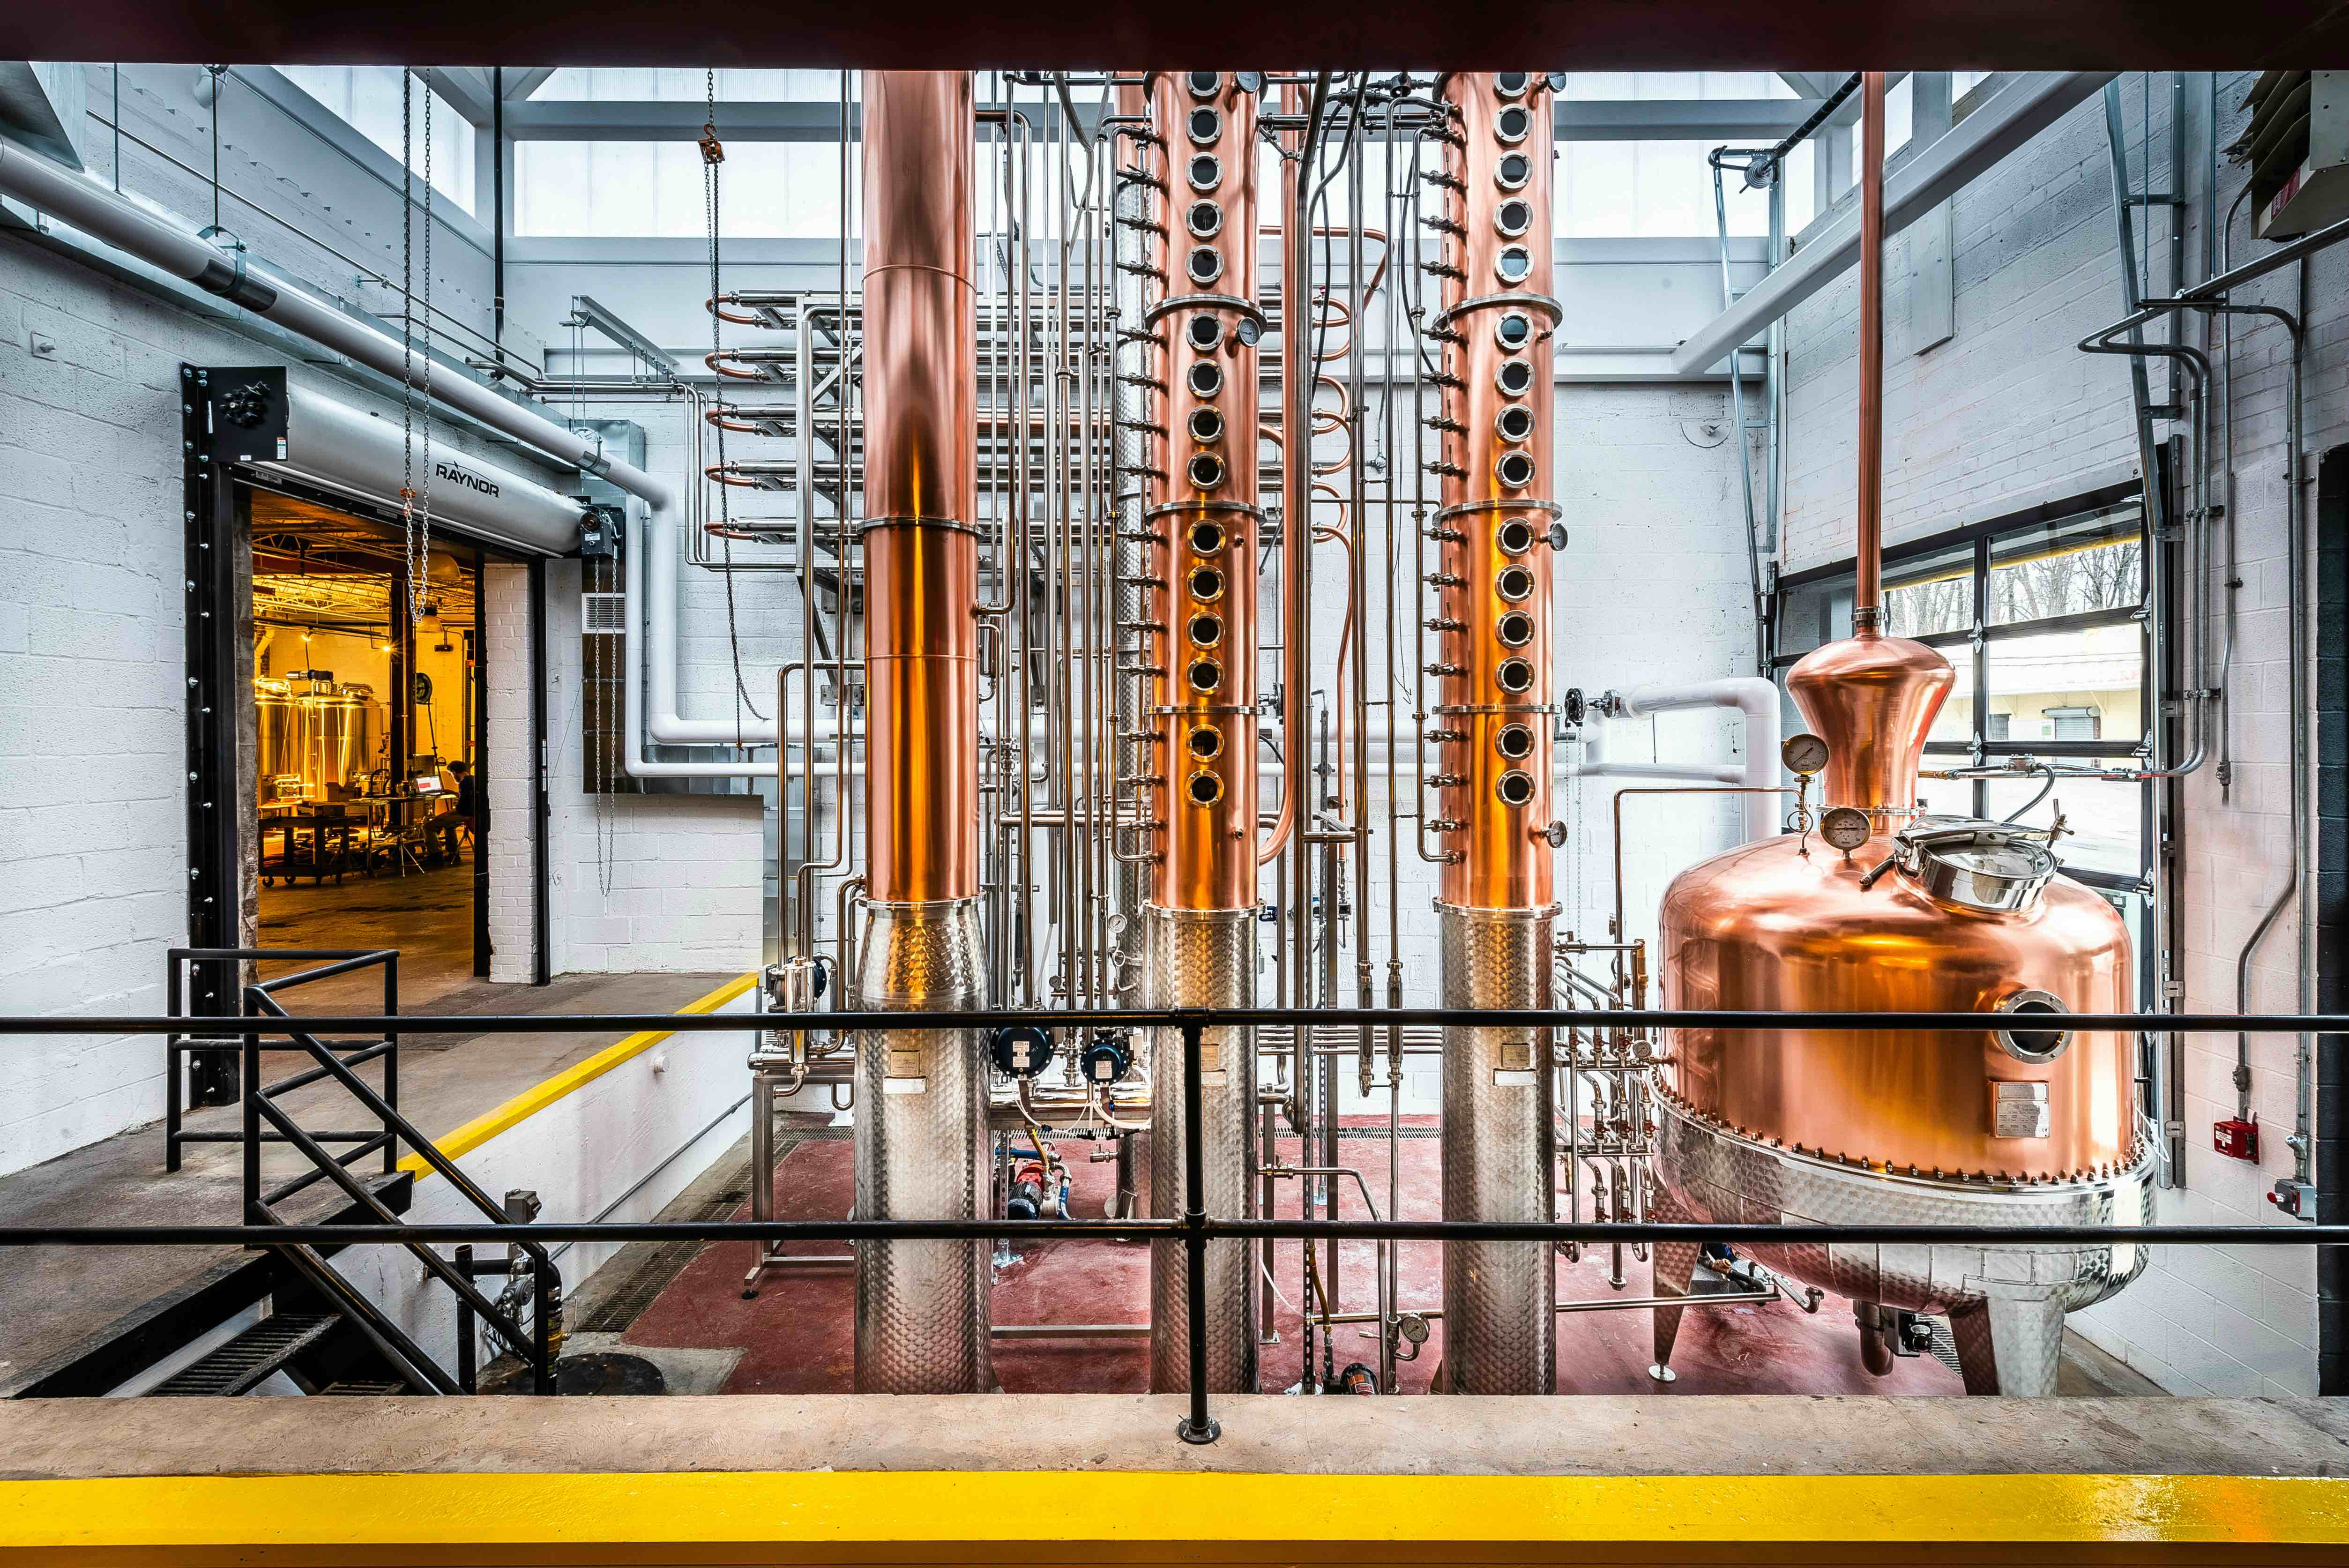 Grain to glass: Craft distilleries welcome visitors for tastings, tours